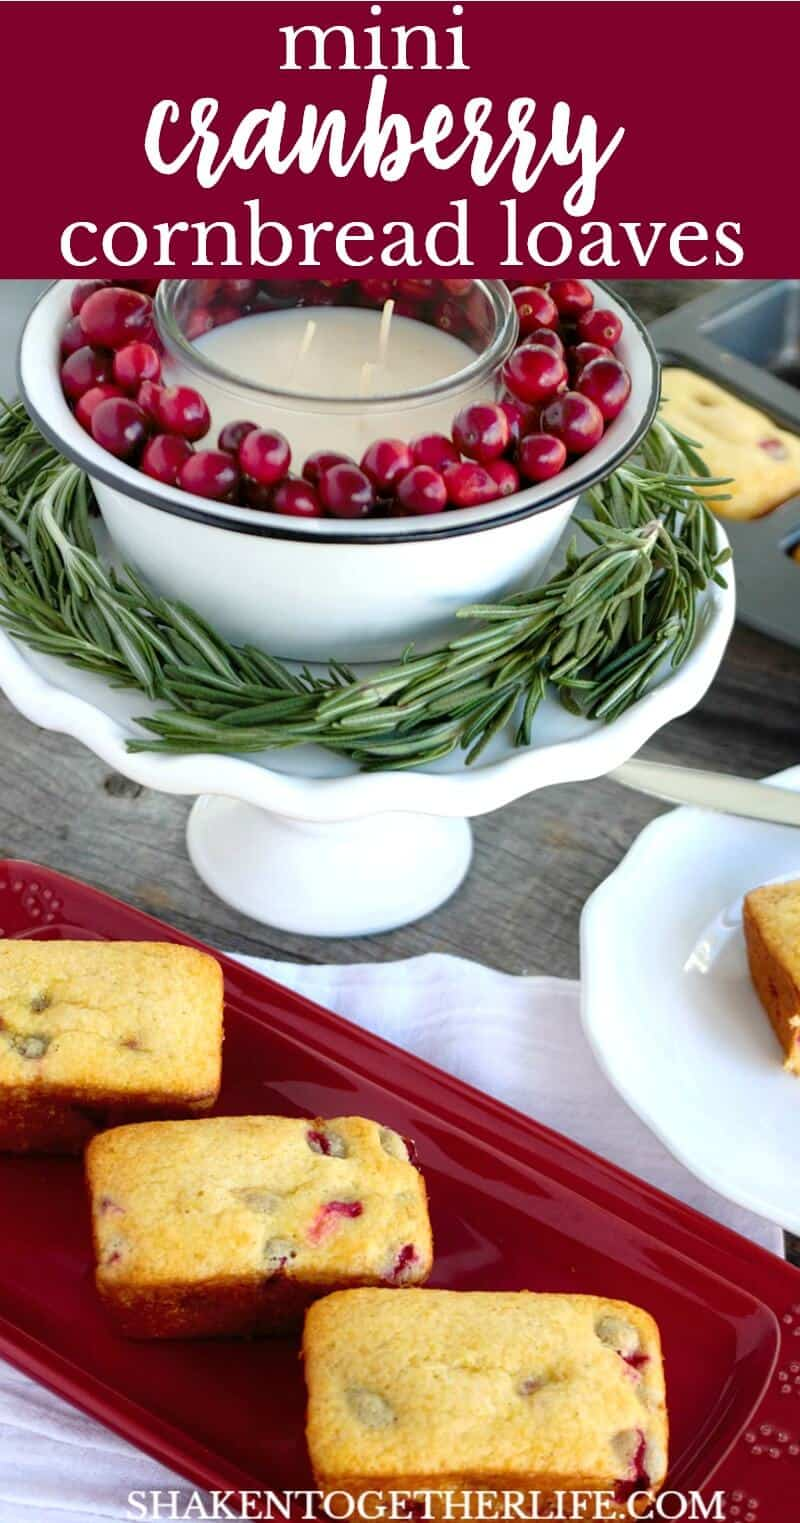 No holiday meal is complete without these sweet and slightly tart Mini Cranberry Cornbread Loaves!